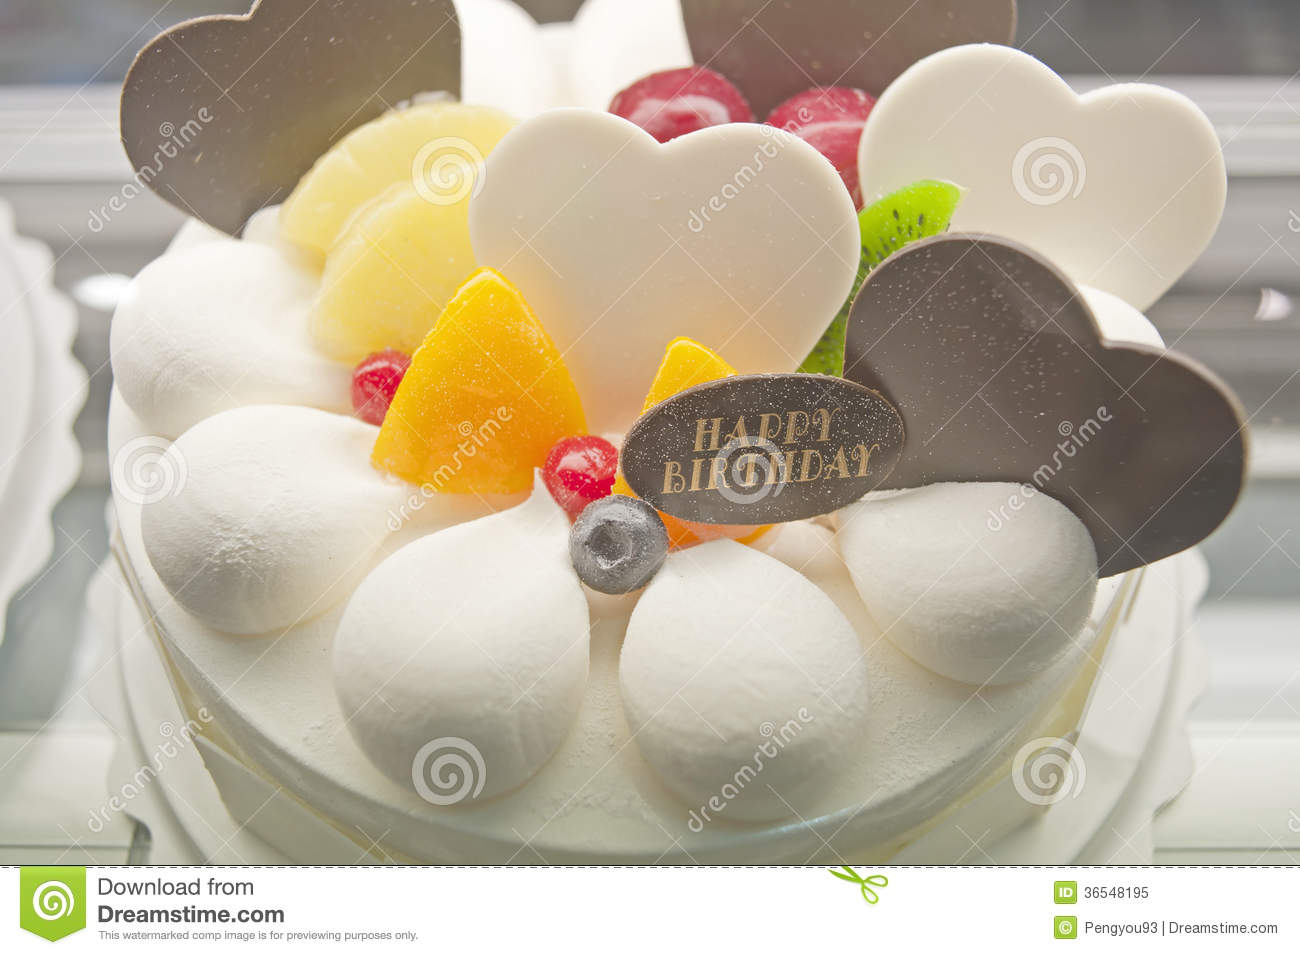 Birthday Pastry Cake Images Download : Birthday Cakes, Pastries Design Royalty Free Stock Photo ...